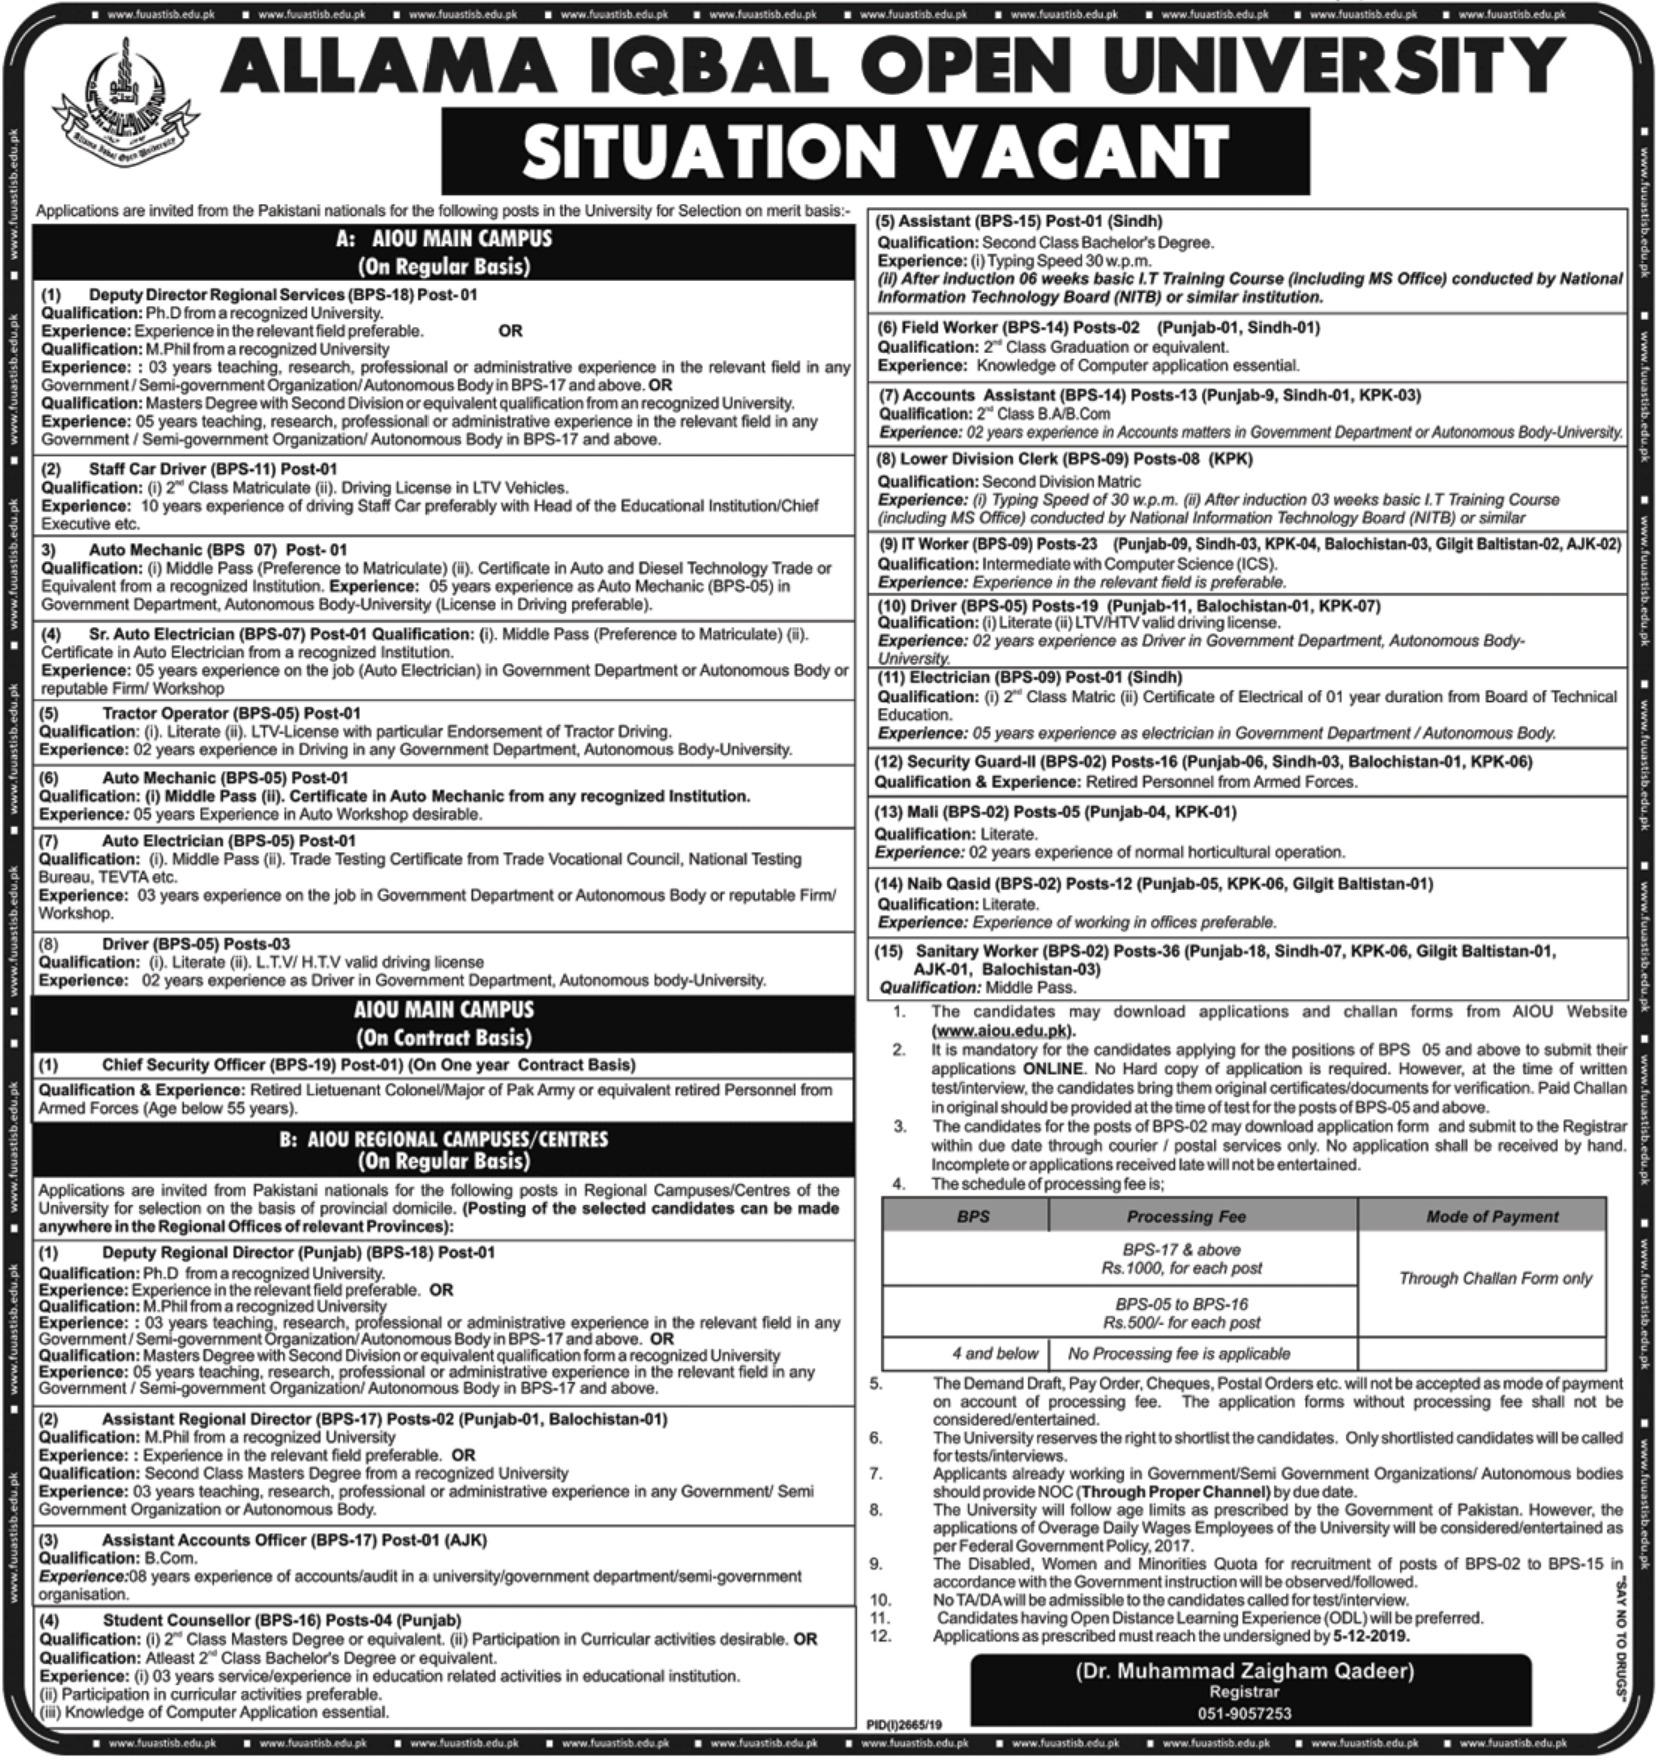 AIOU Jobs 2019 Allama Iqbal Open University